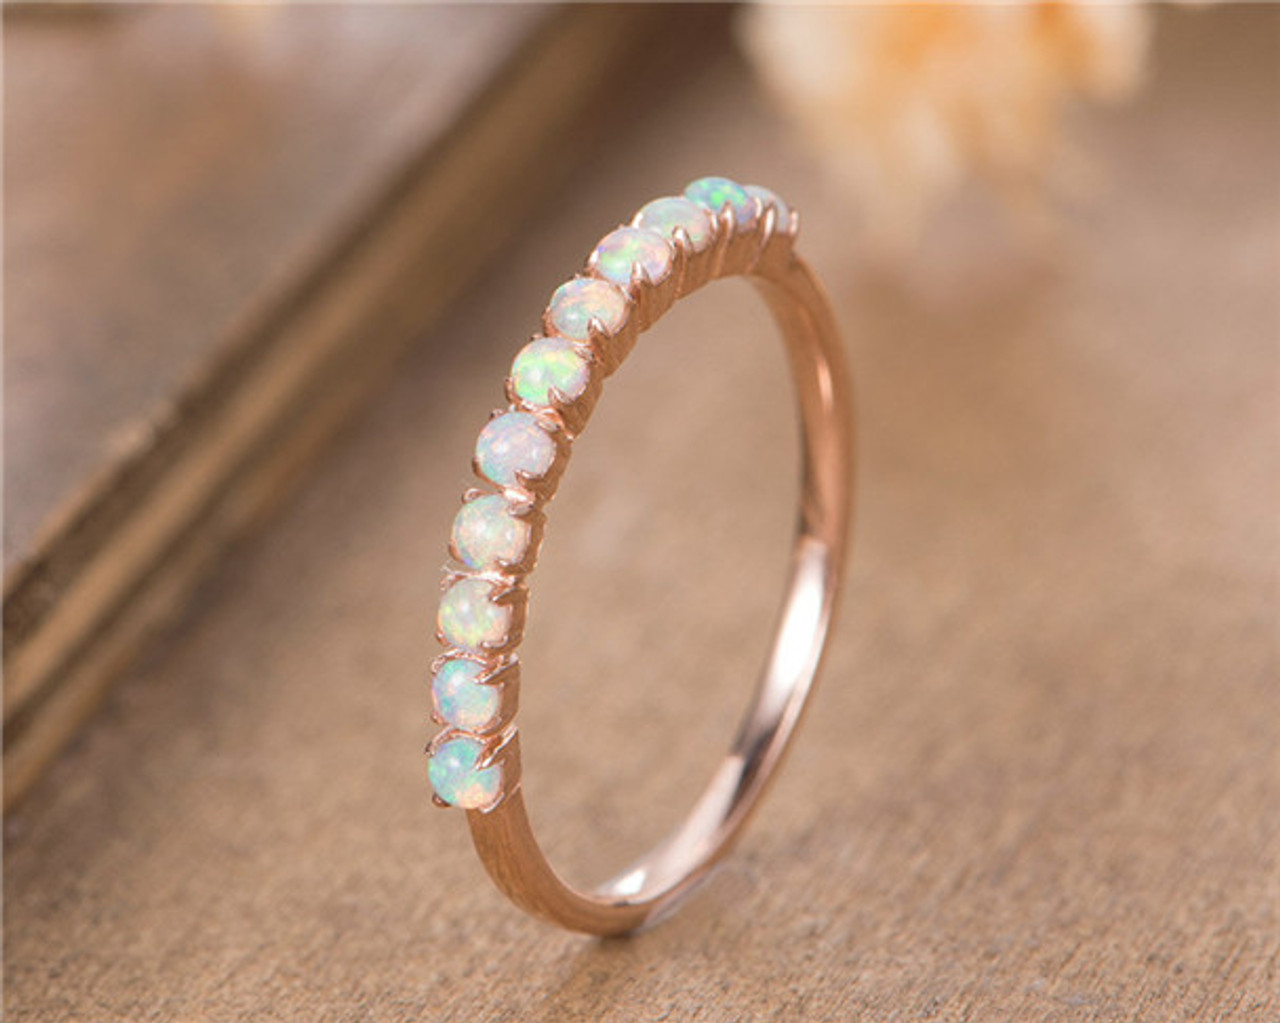 Opal Wedding Band.Opal Wedding Band 14k Rose Gold October Birthstone Stacking Matching Bridal Anniversary Gift